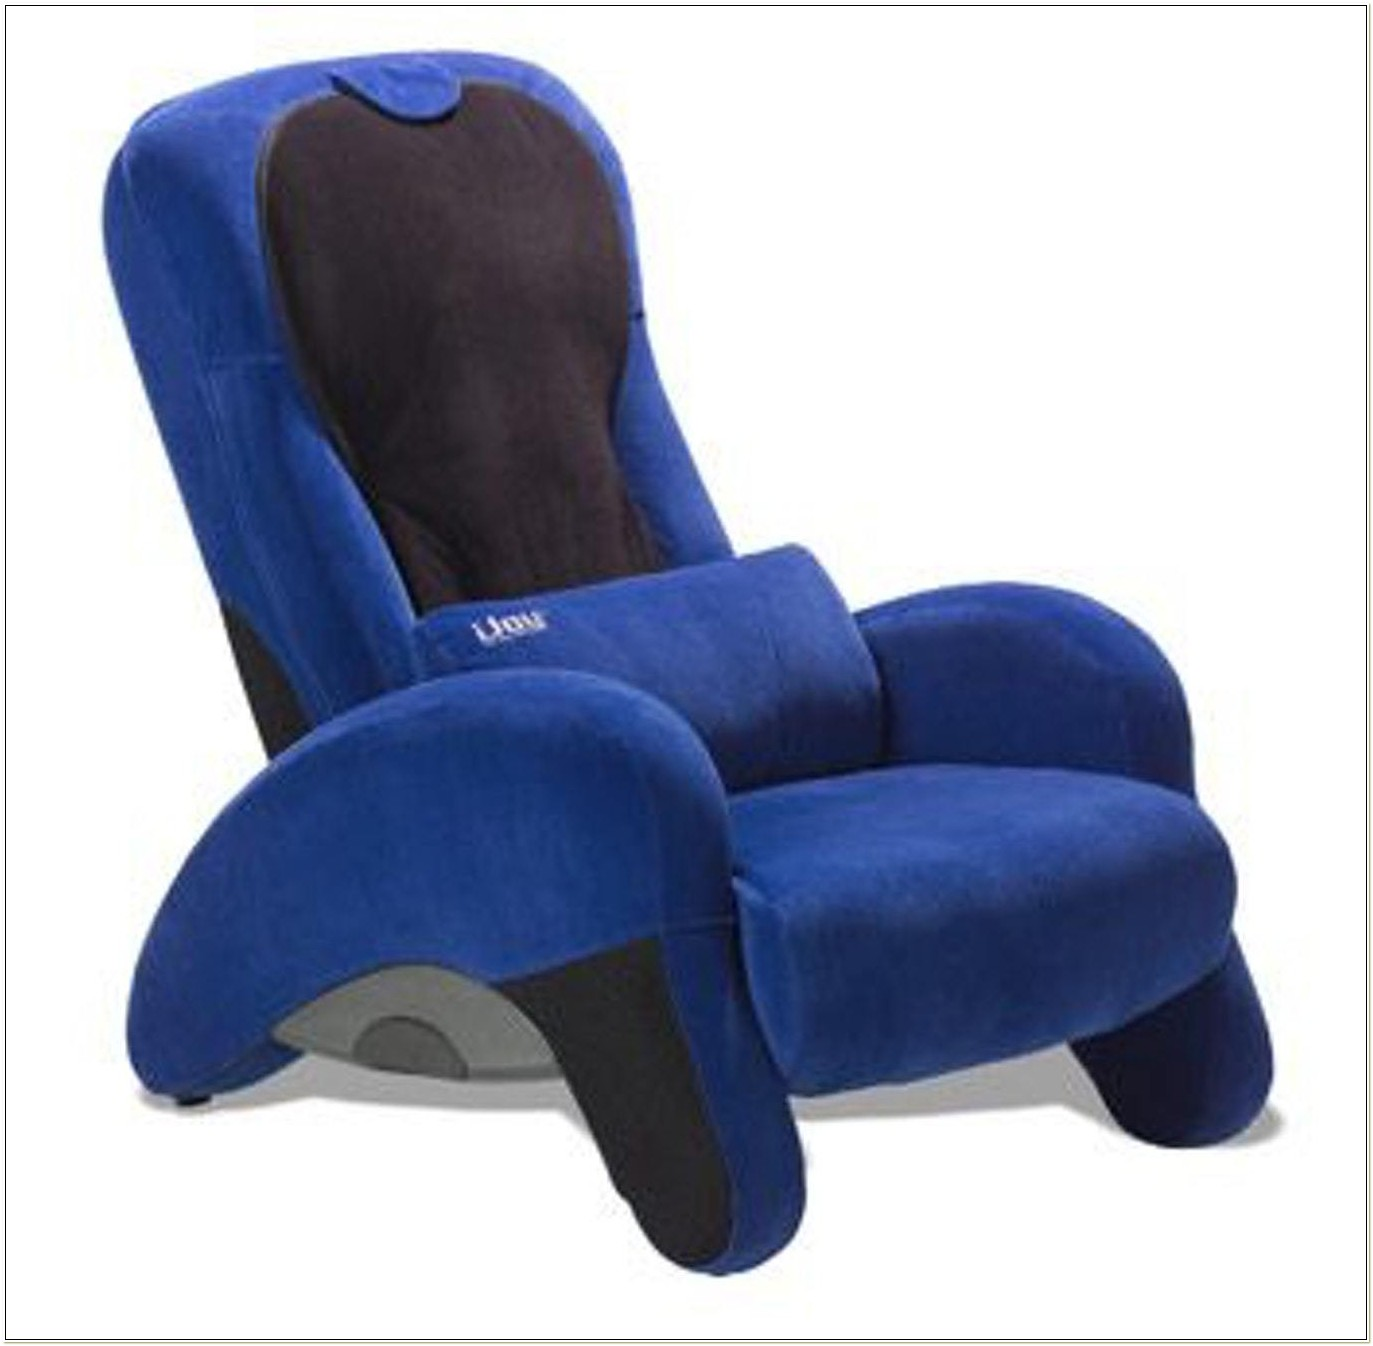 Ijoy 100 Robotic Massage Chair Blue